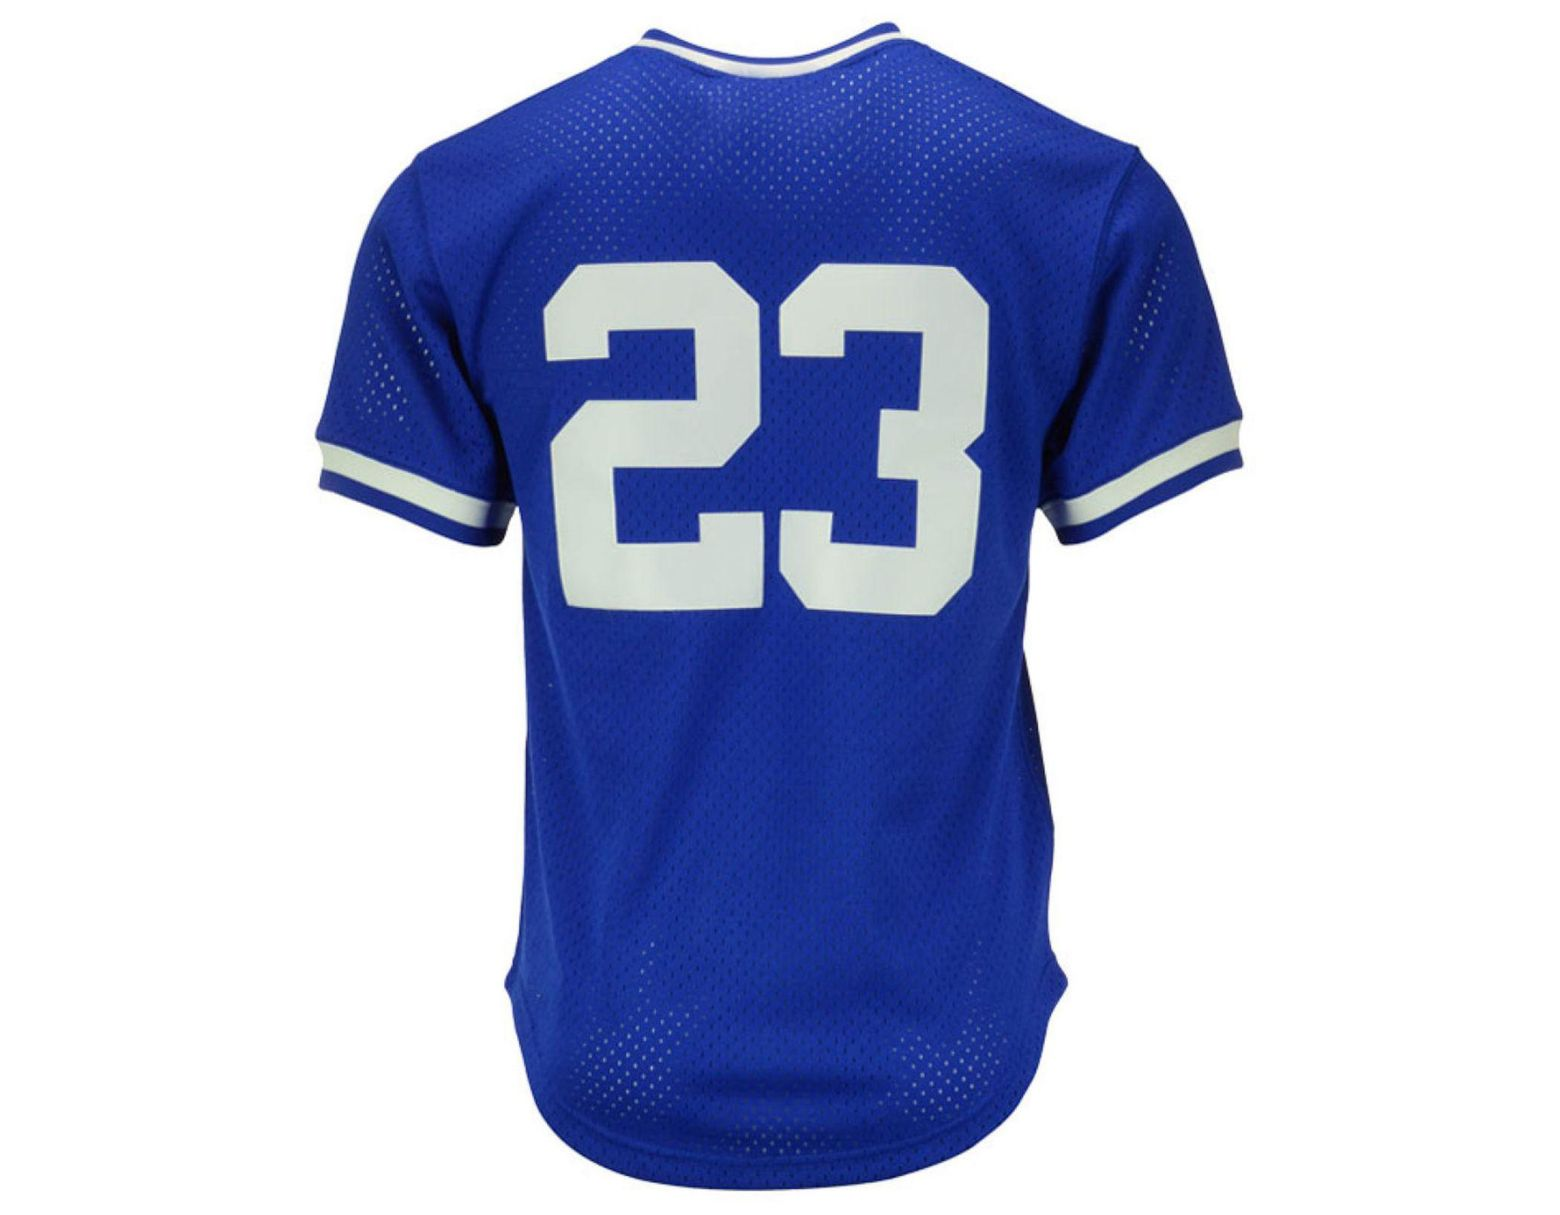 f3f5c3c09 Mitchell & Ness Men's Ryne Sandberg Chicago Cubs Authentic Mesh Batting  Practice Jersey in Blue for Men - Lyst